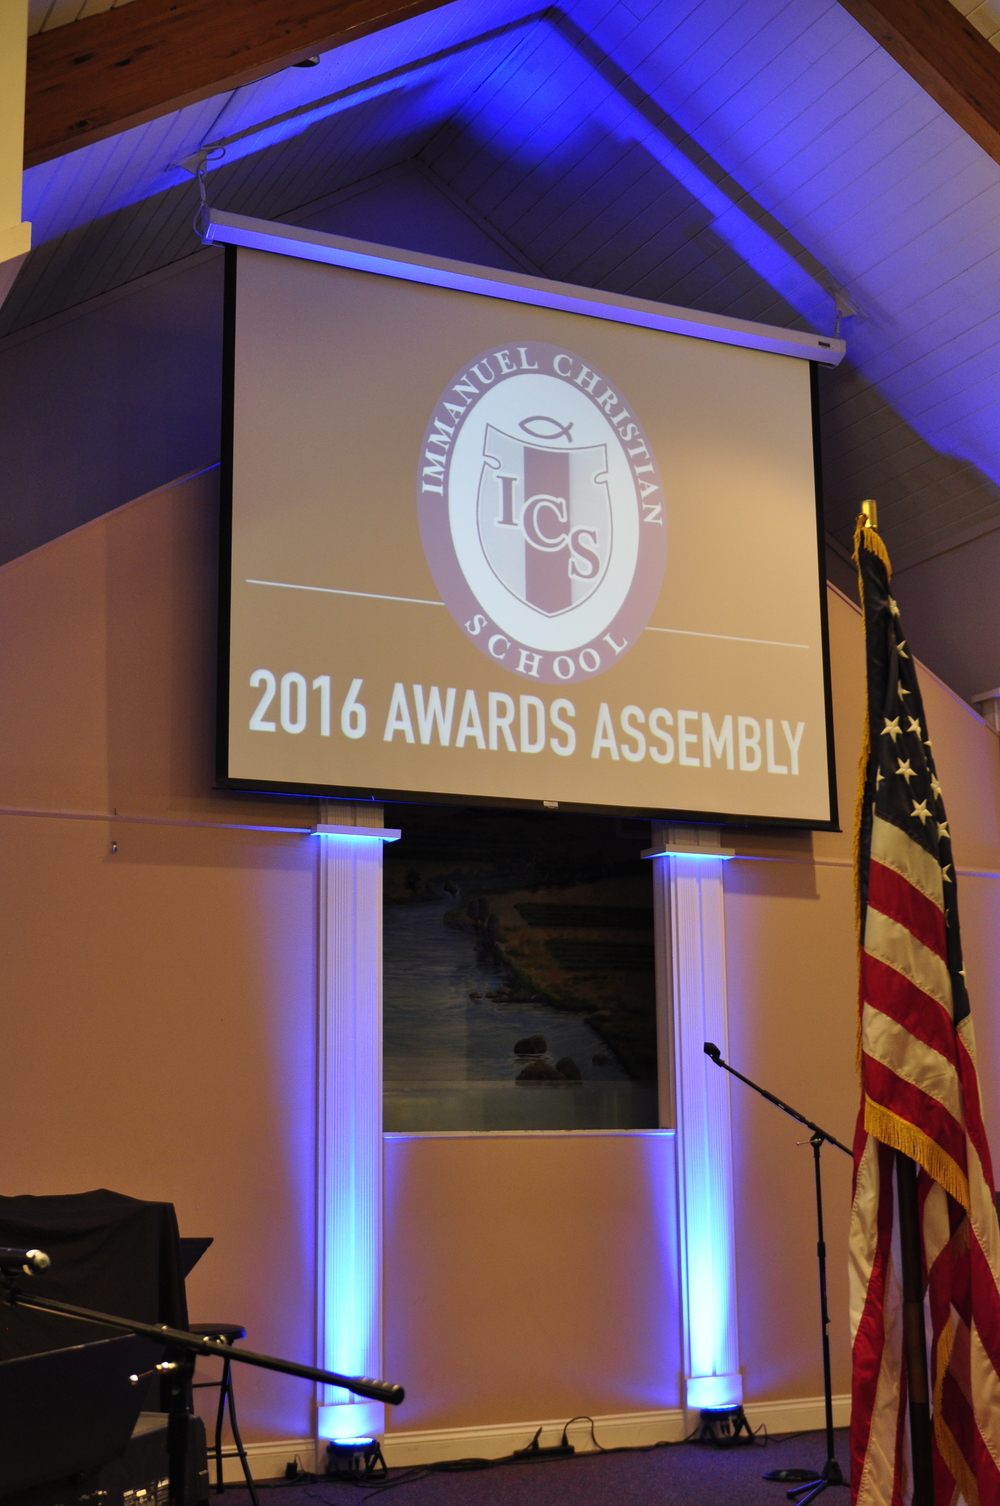 Awards Assembly 2016